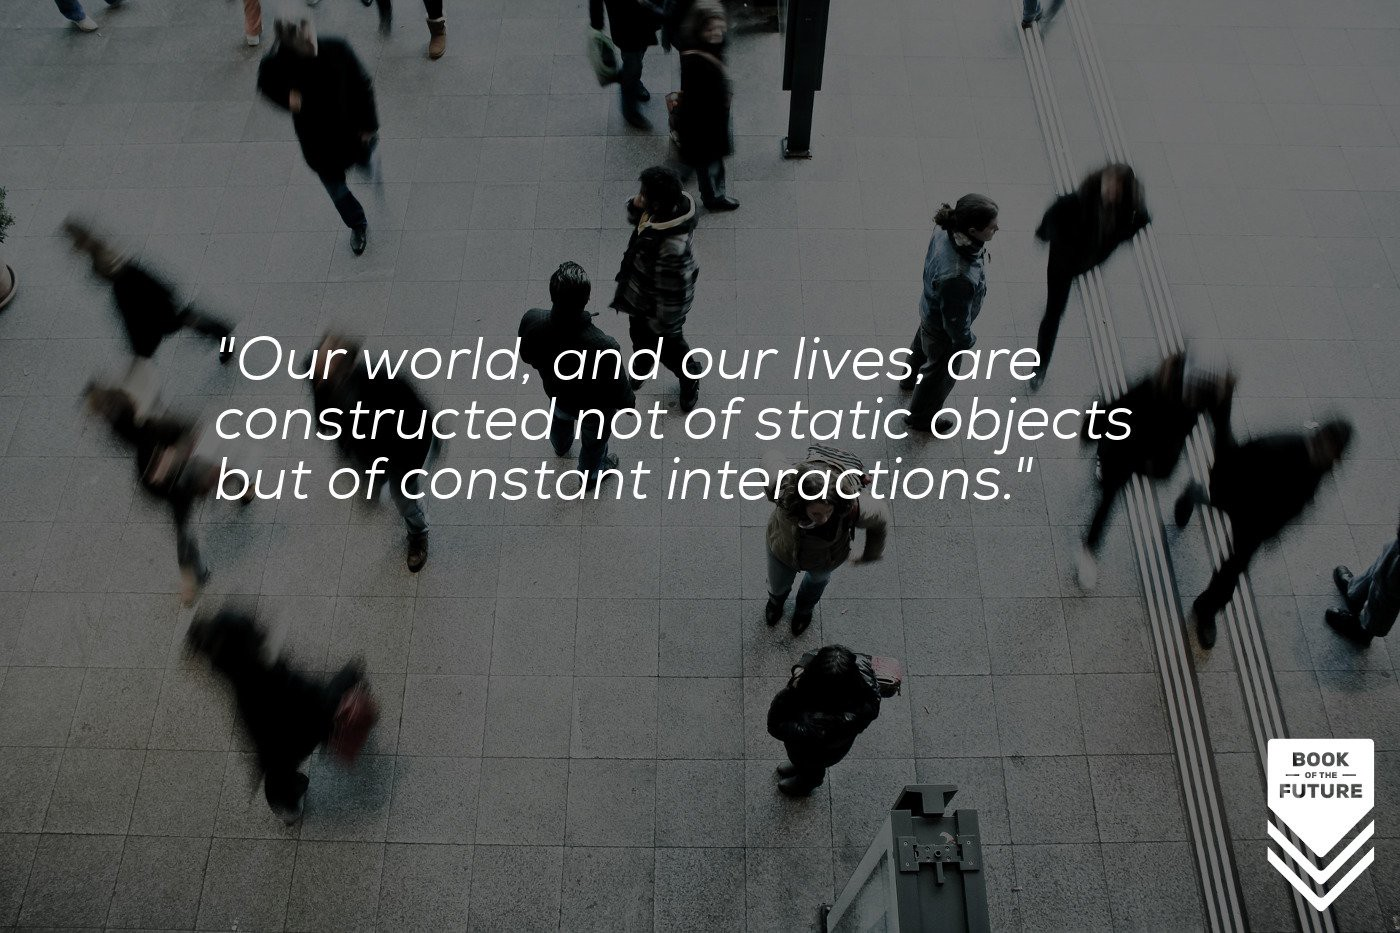 Our world, and our lives, are constructed not of static objects but of constant interactions.